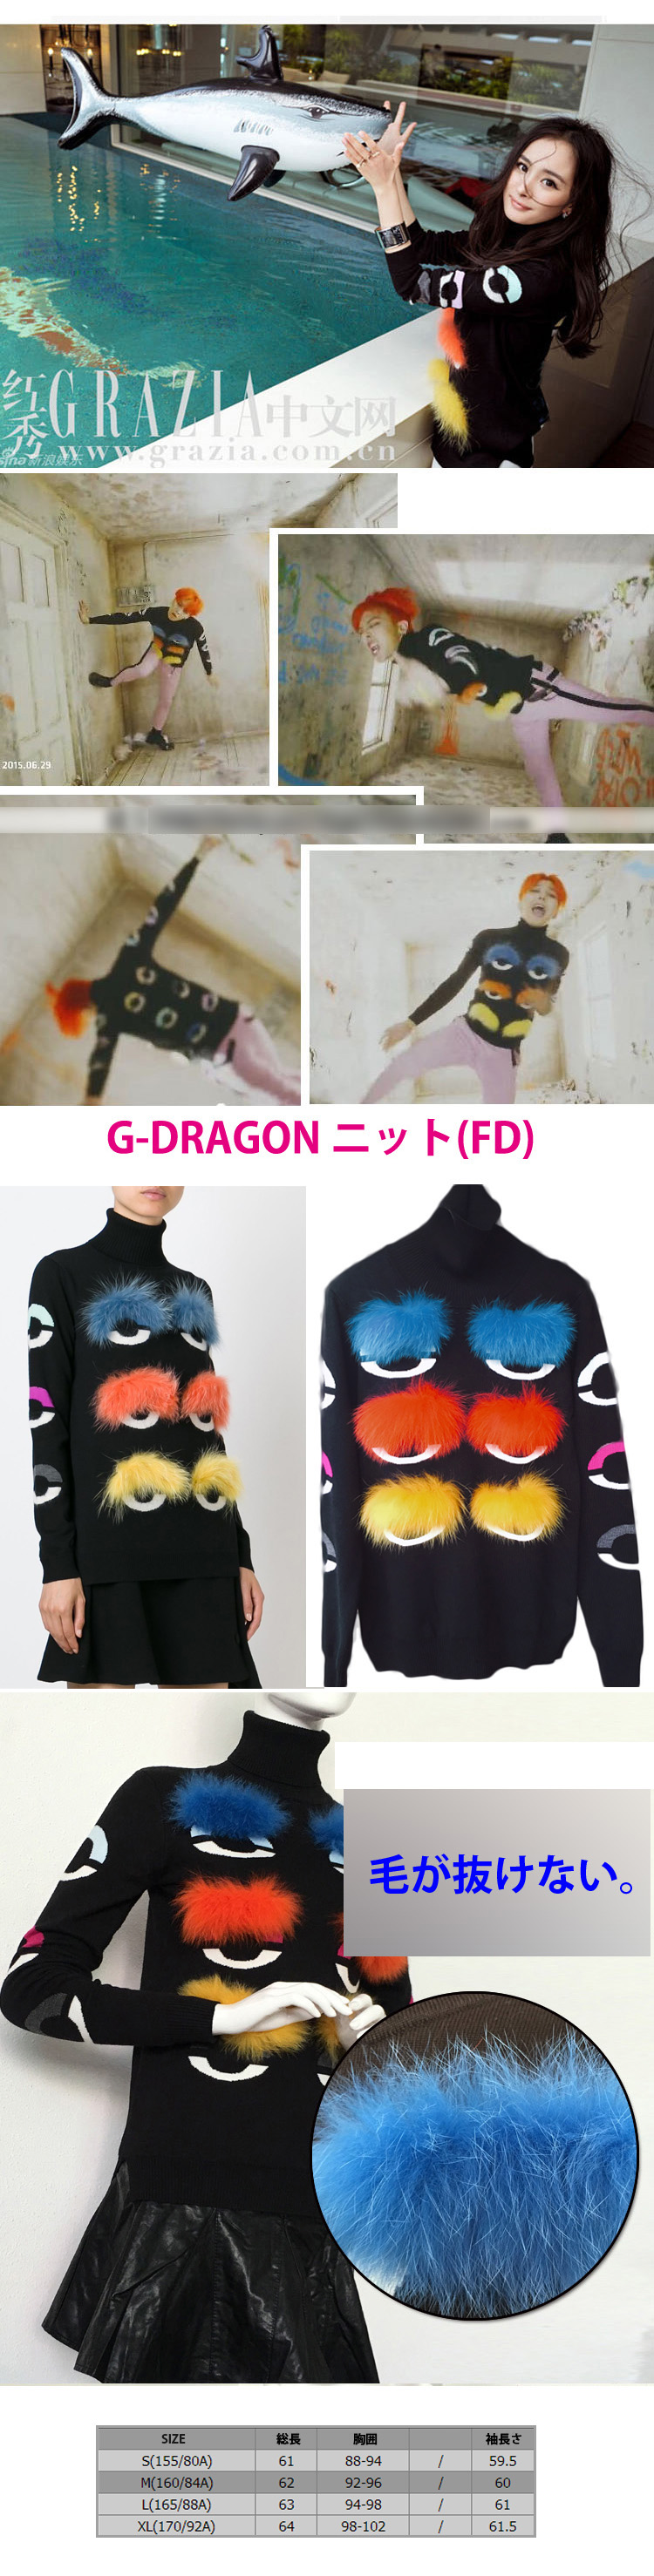 bigbang g-dragon made